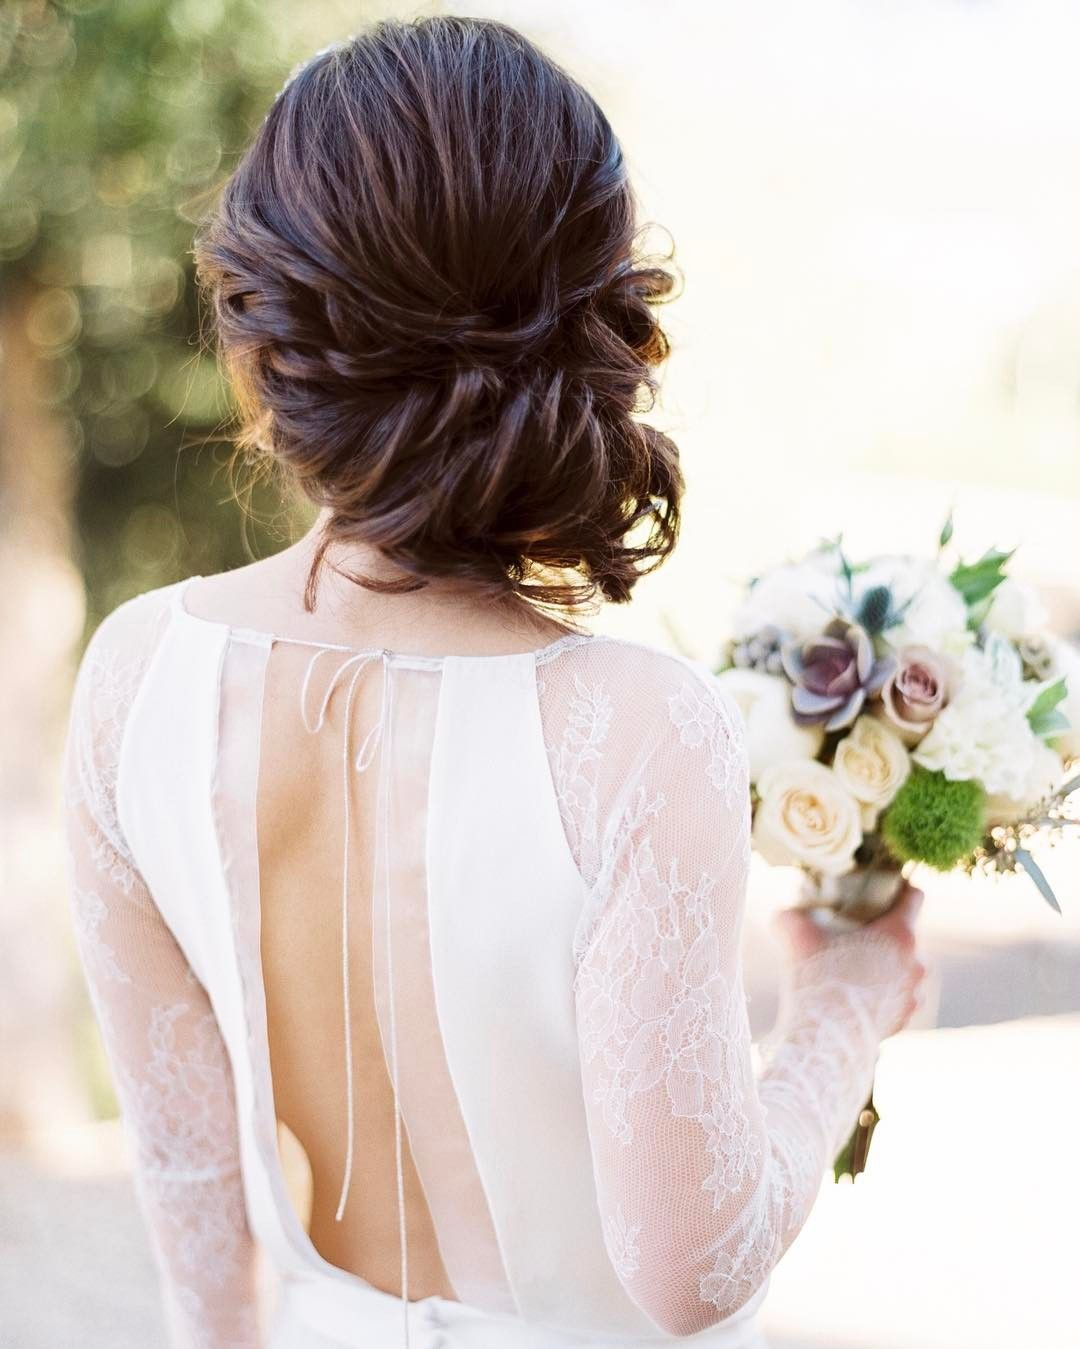 Lovely Classic Updo | Wedding Hair & Makeup | Pinterest | Classic ...